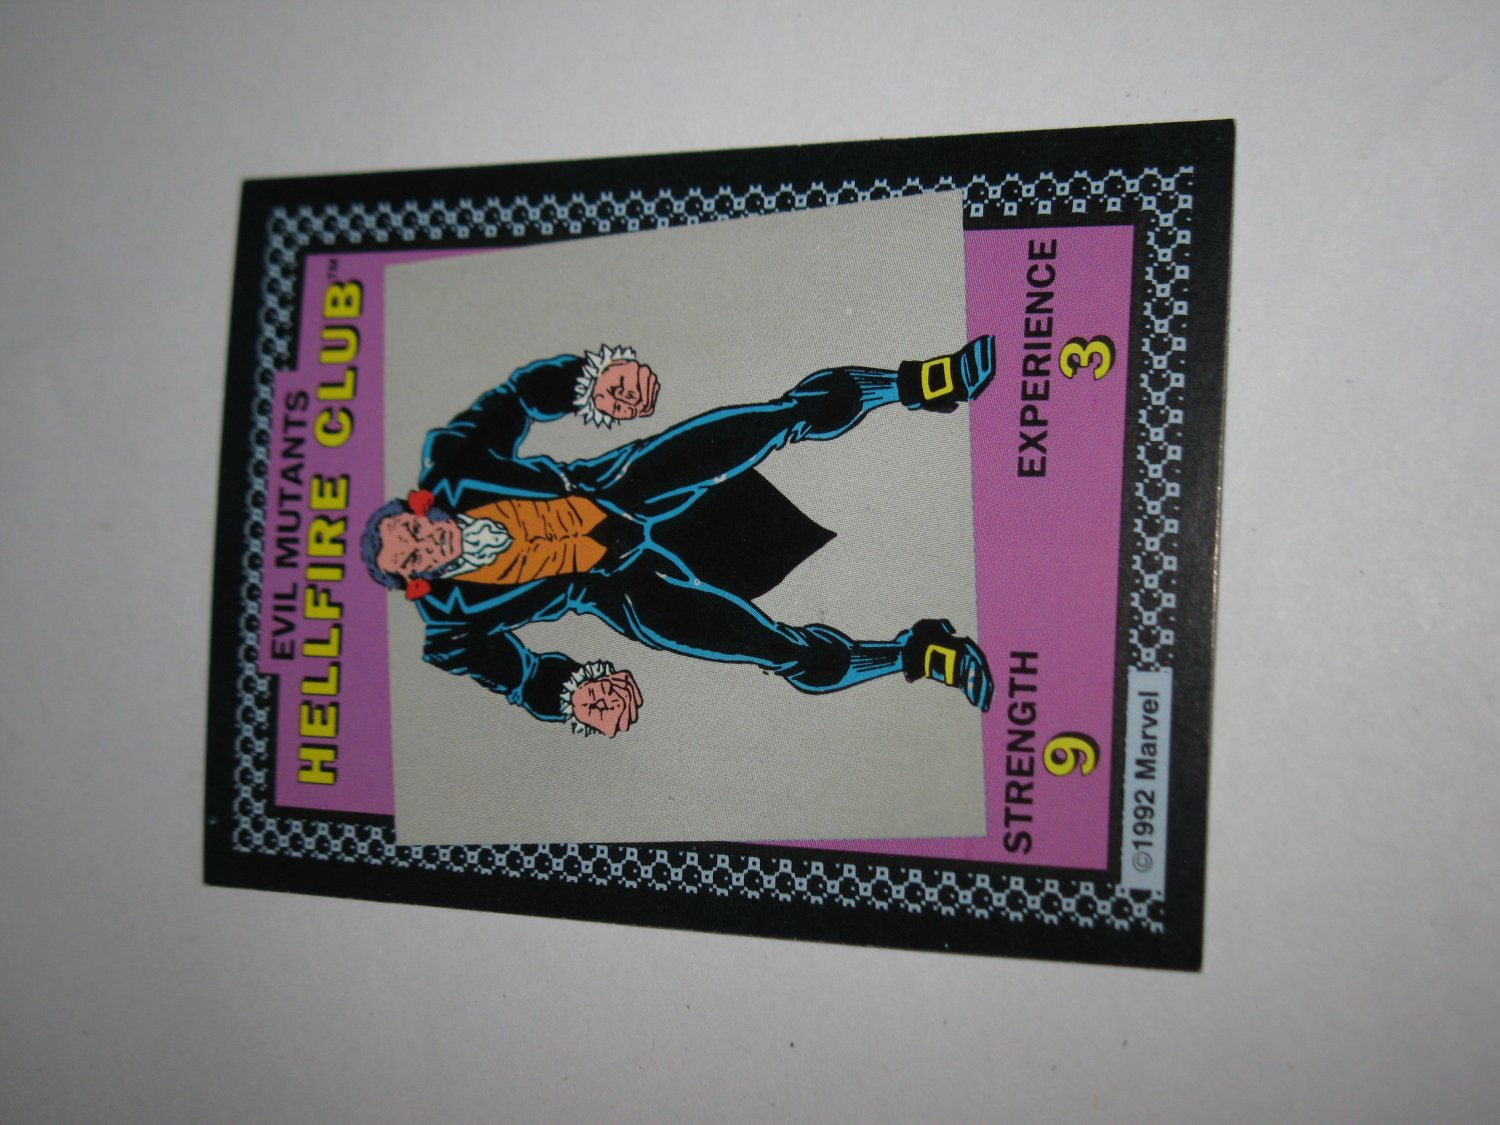 1992 Uncanny X-Men Alert! Board Game Piece: Hellfire Club Evil Mutants Card